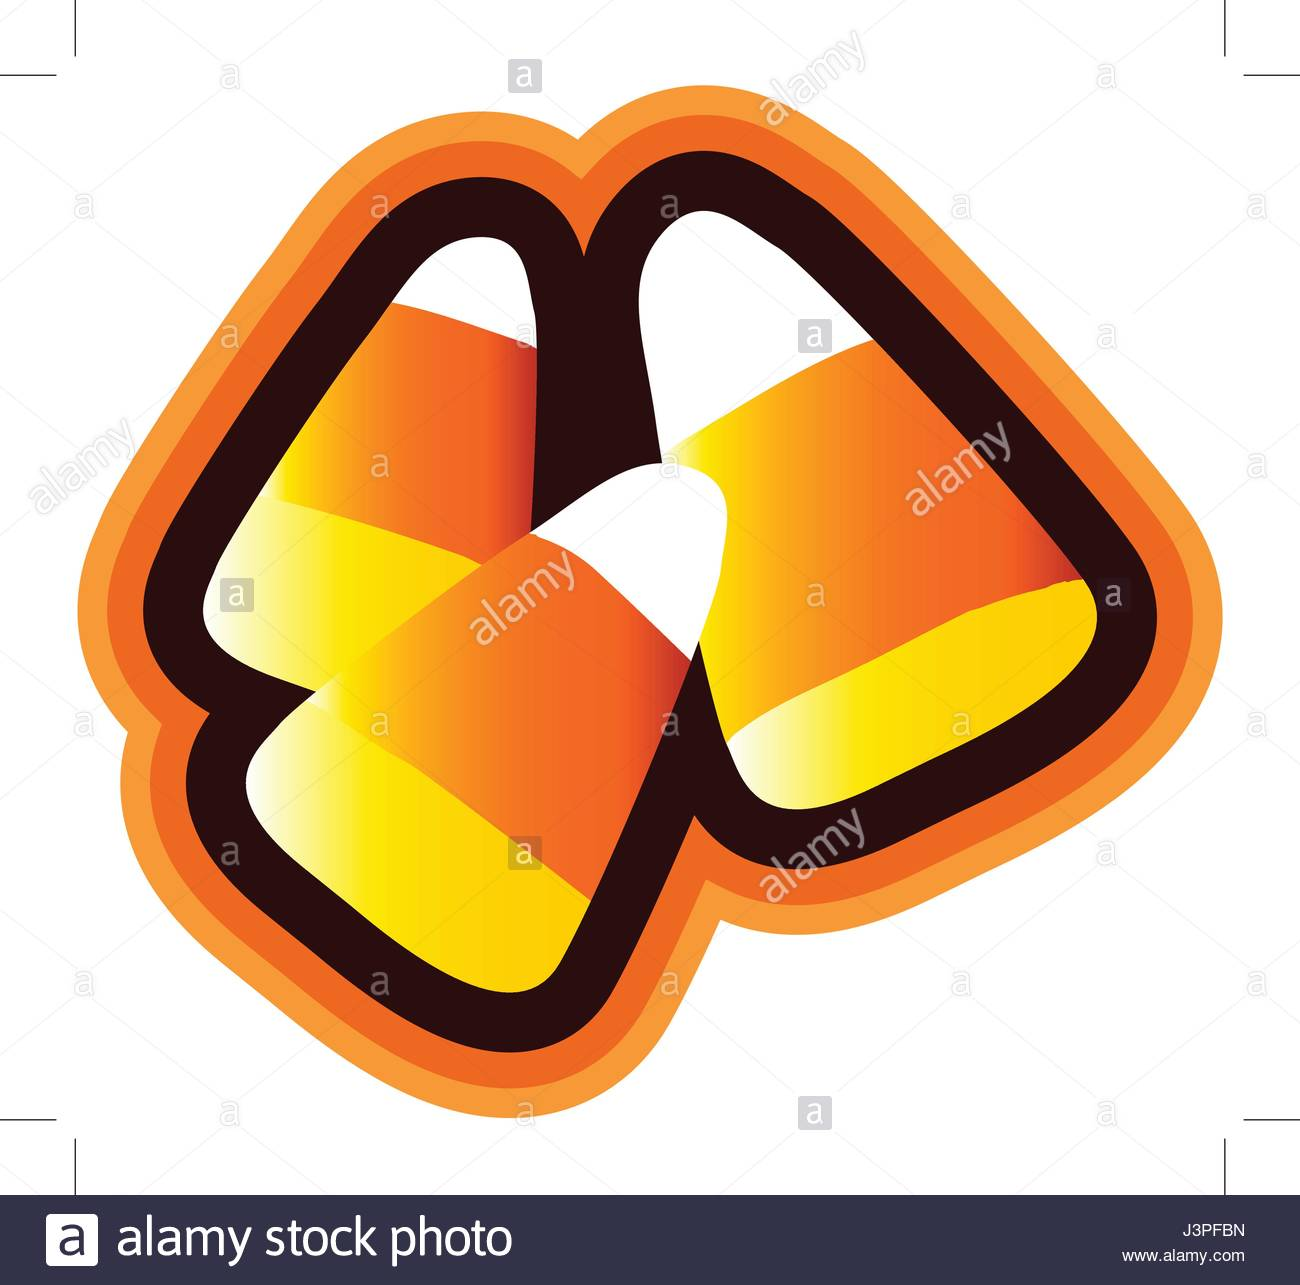 1300x1285 Candy Corn Isolated Candy Corn Clipart Isolated With Orange Shaded